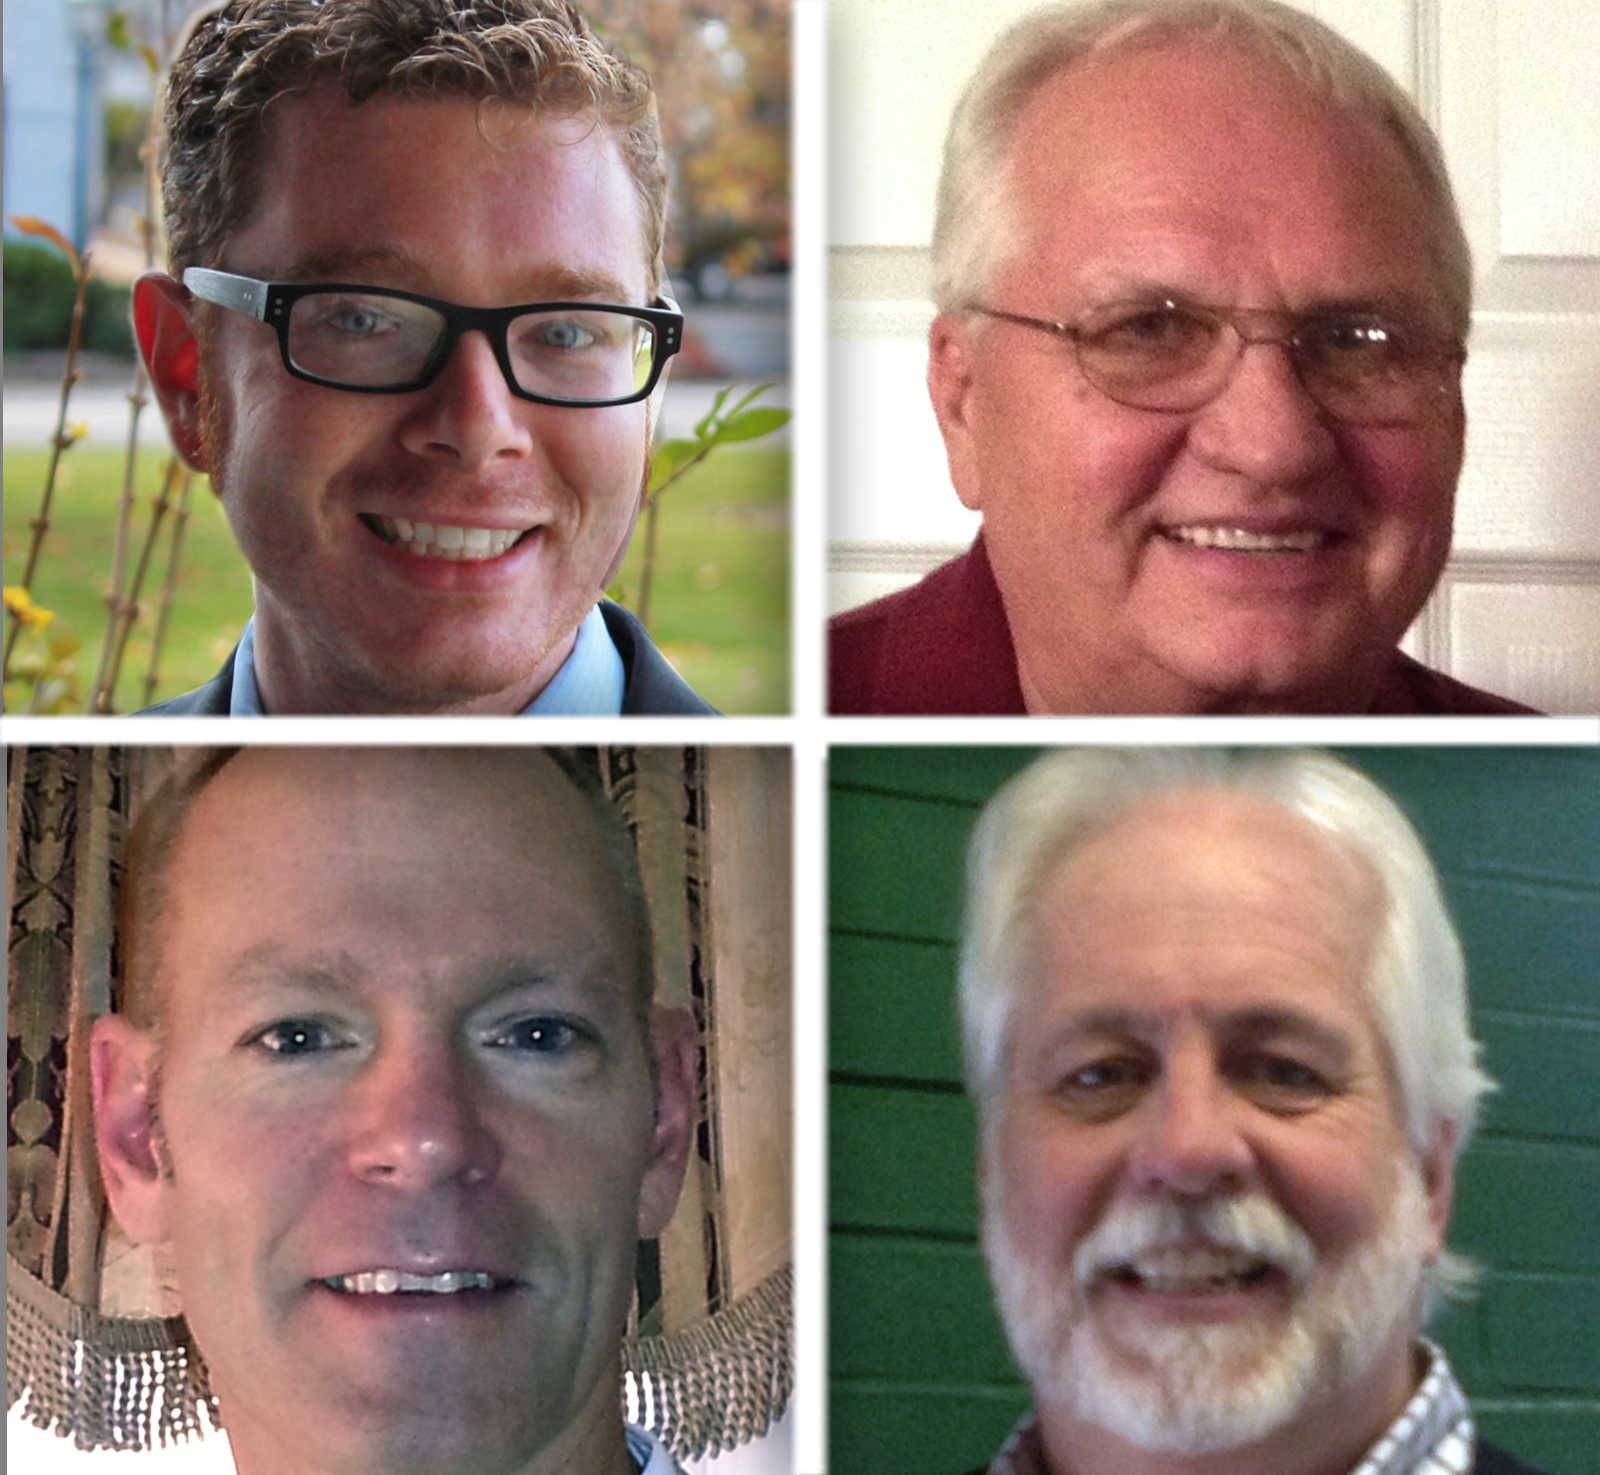 Upper from left, Dakotah Norton and Bill Rekus and lower from left, Paul Roscoe and Kerston Russell are candidates for Mundelein Village Board in the 2015 election.